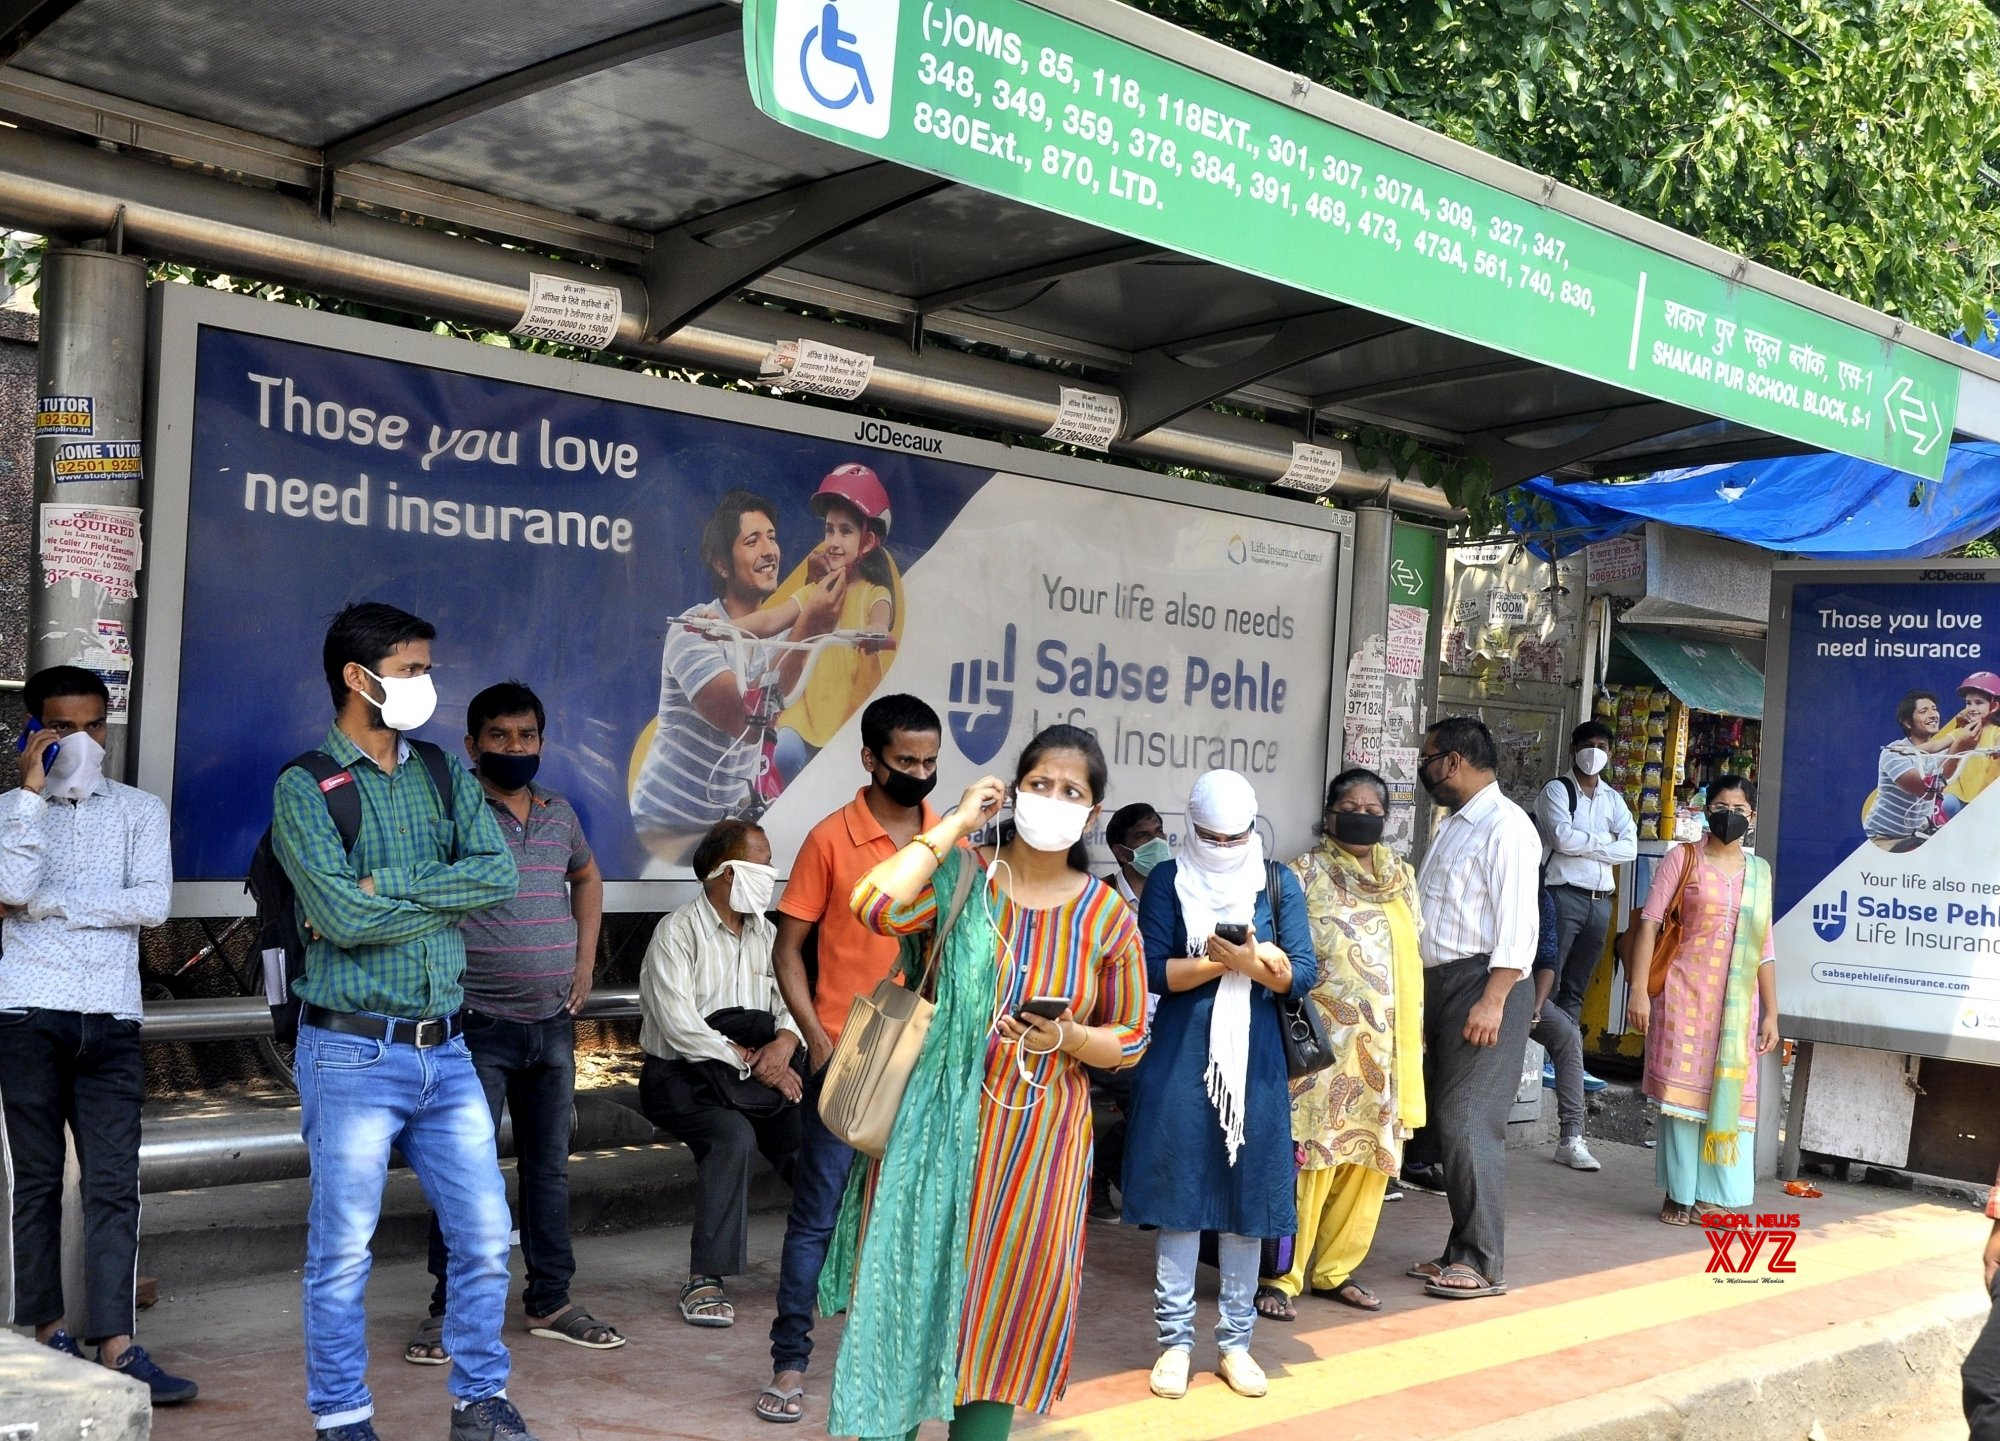 New Delhi: Delhi Transit Corporation resumes operations with restrictions during lockdown - 4 #Gallery